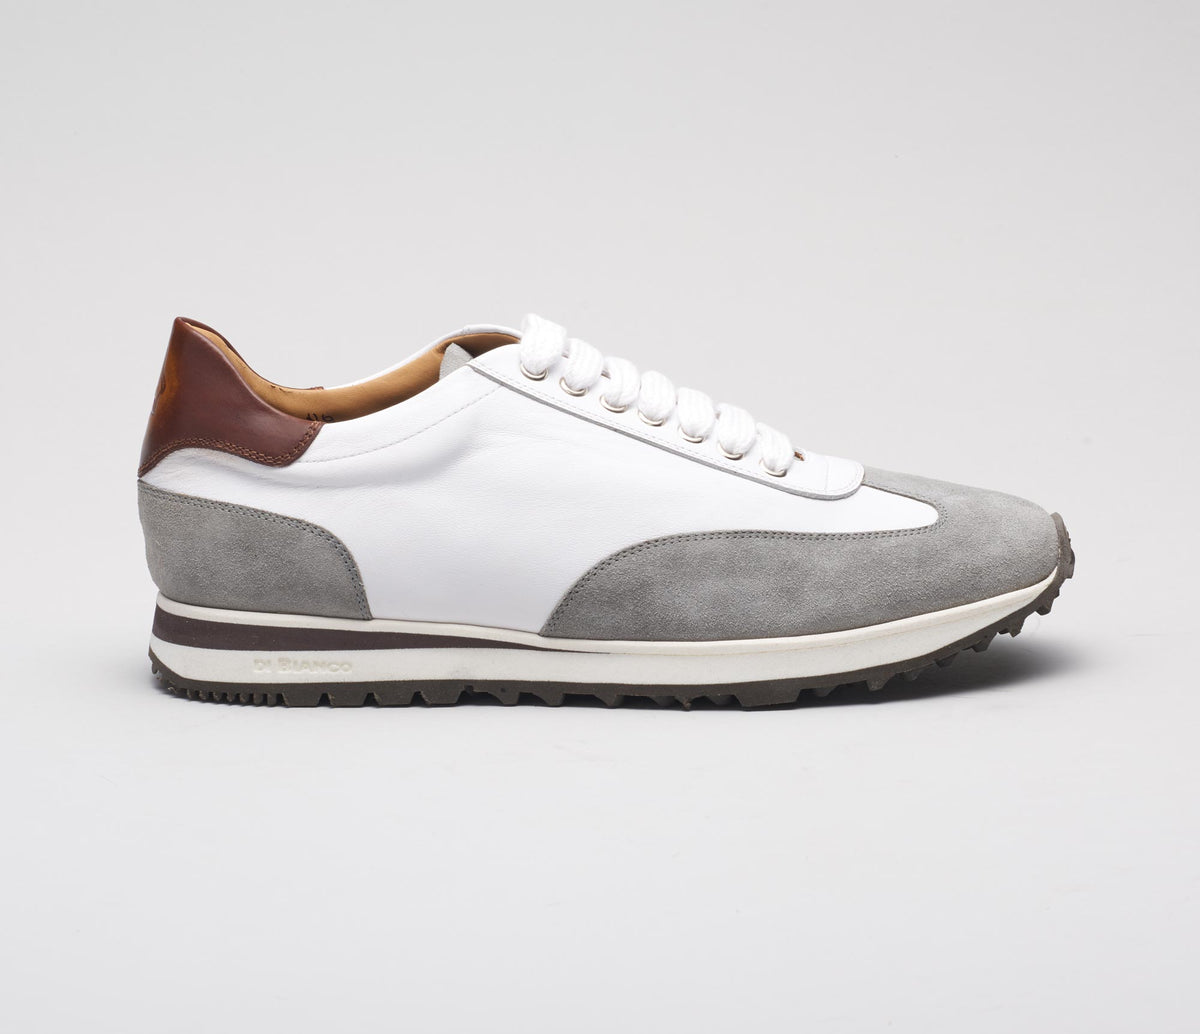 The Trieste White Leather Sneakers